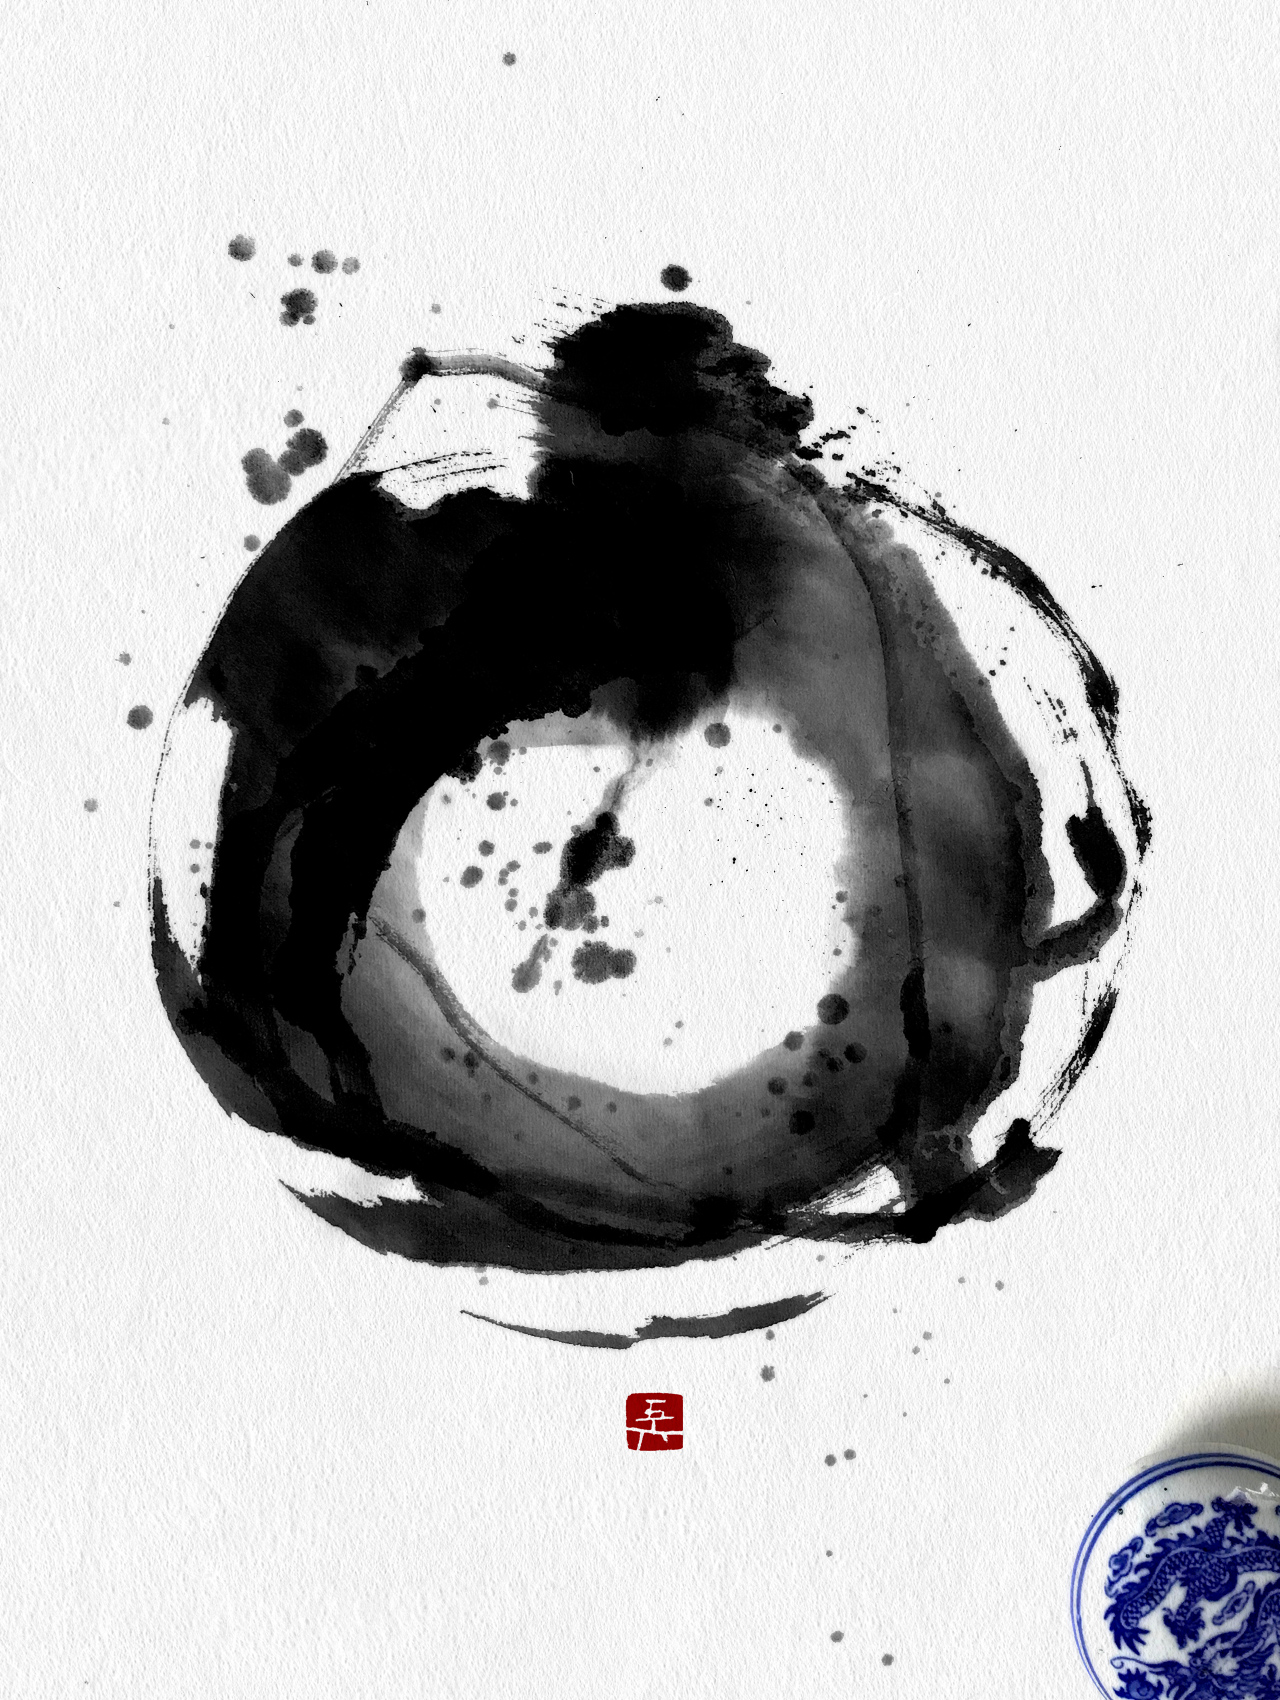 円相 一円相 孤輪月 luna piena full moon 書道作品 japaneseart japanesecalligraphy